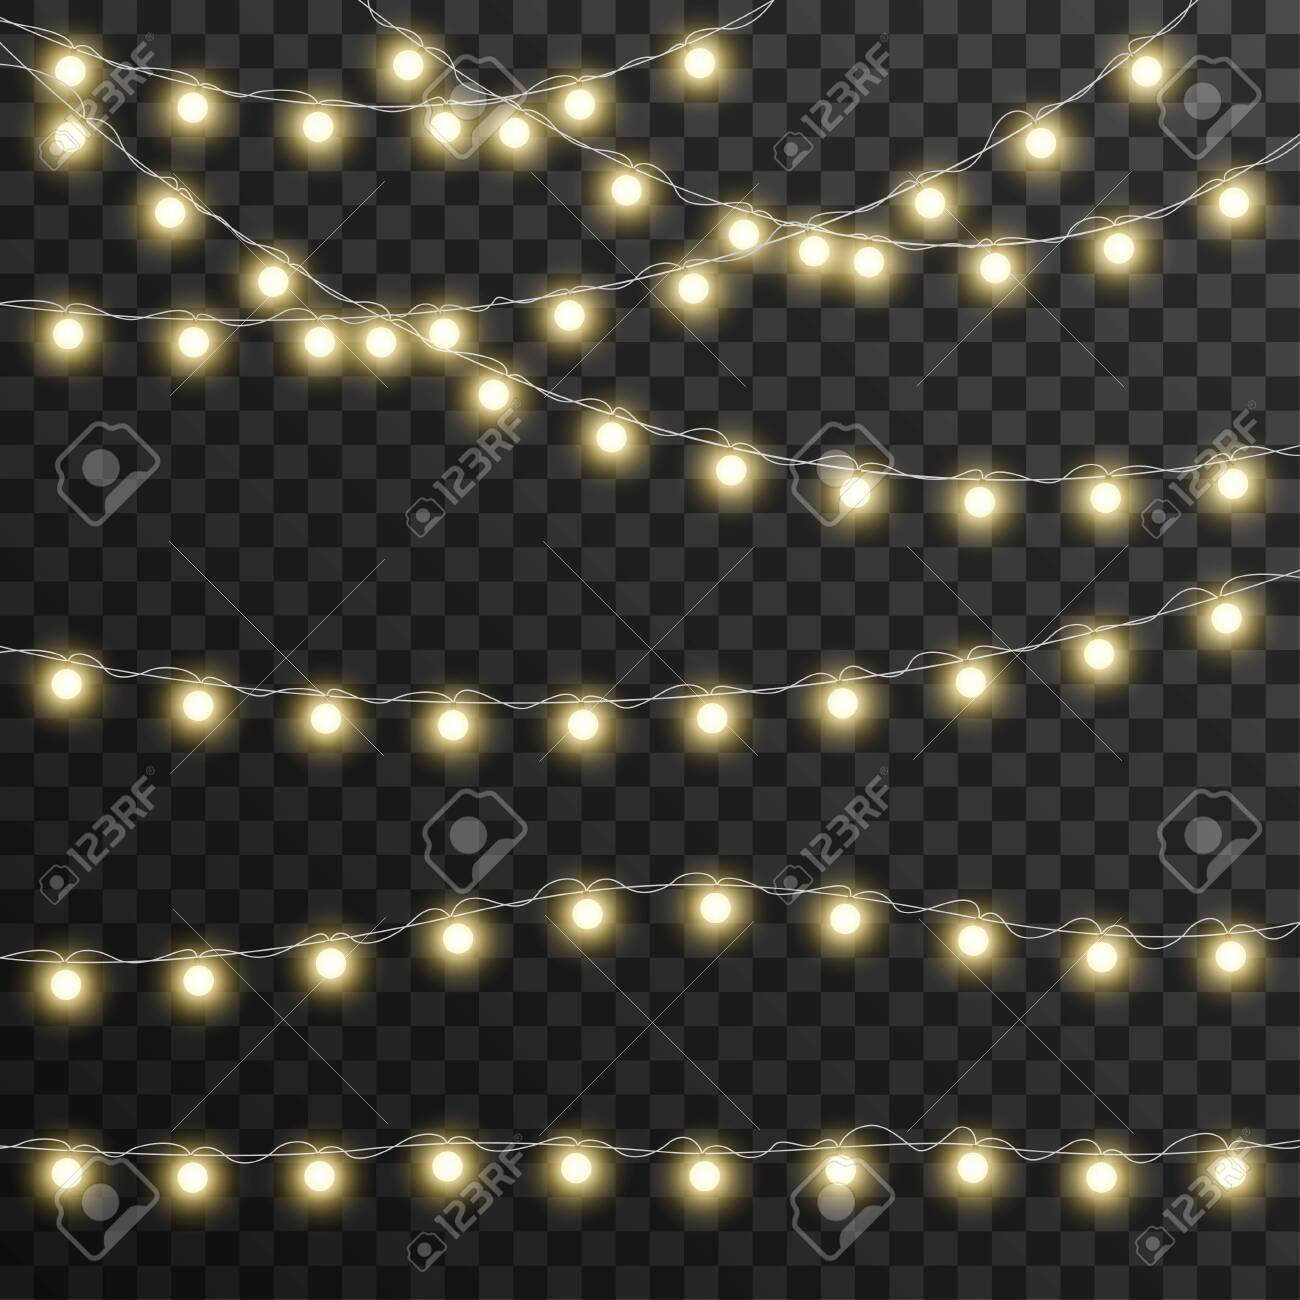 Christmas lights isolated on transparent background, vector illustration - 131244624